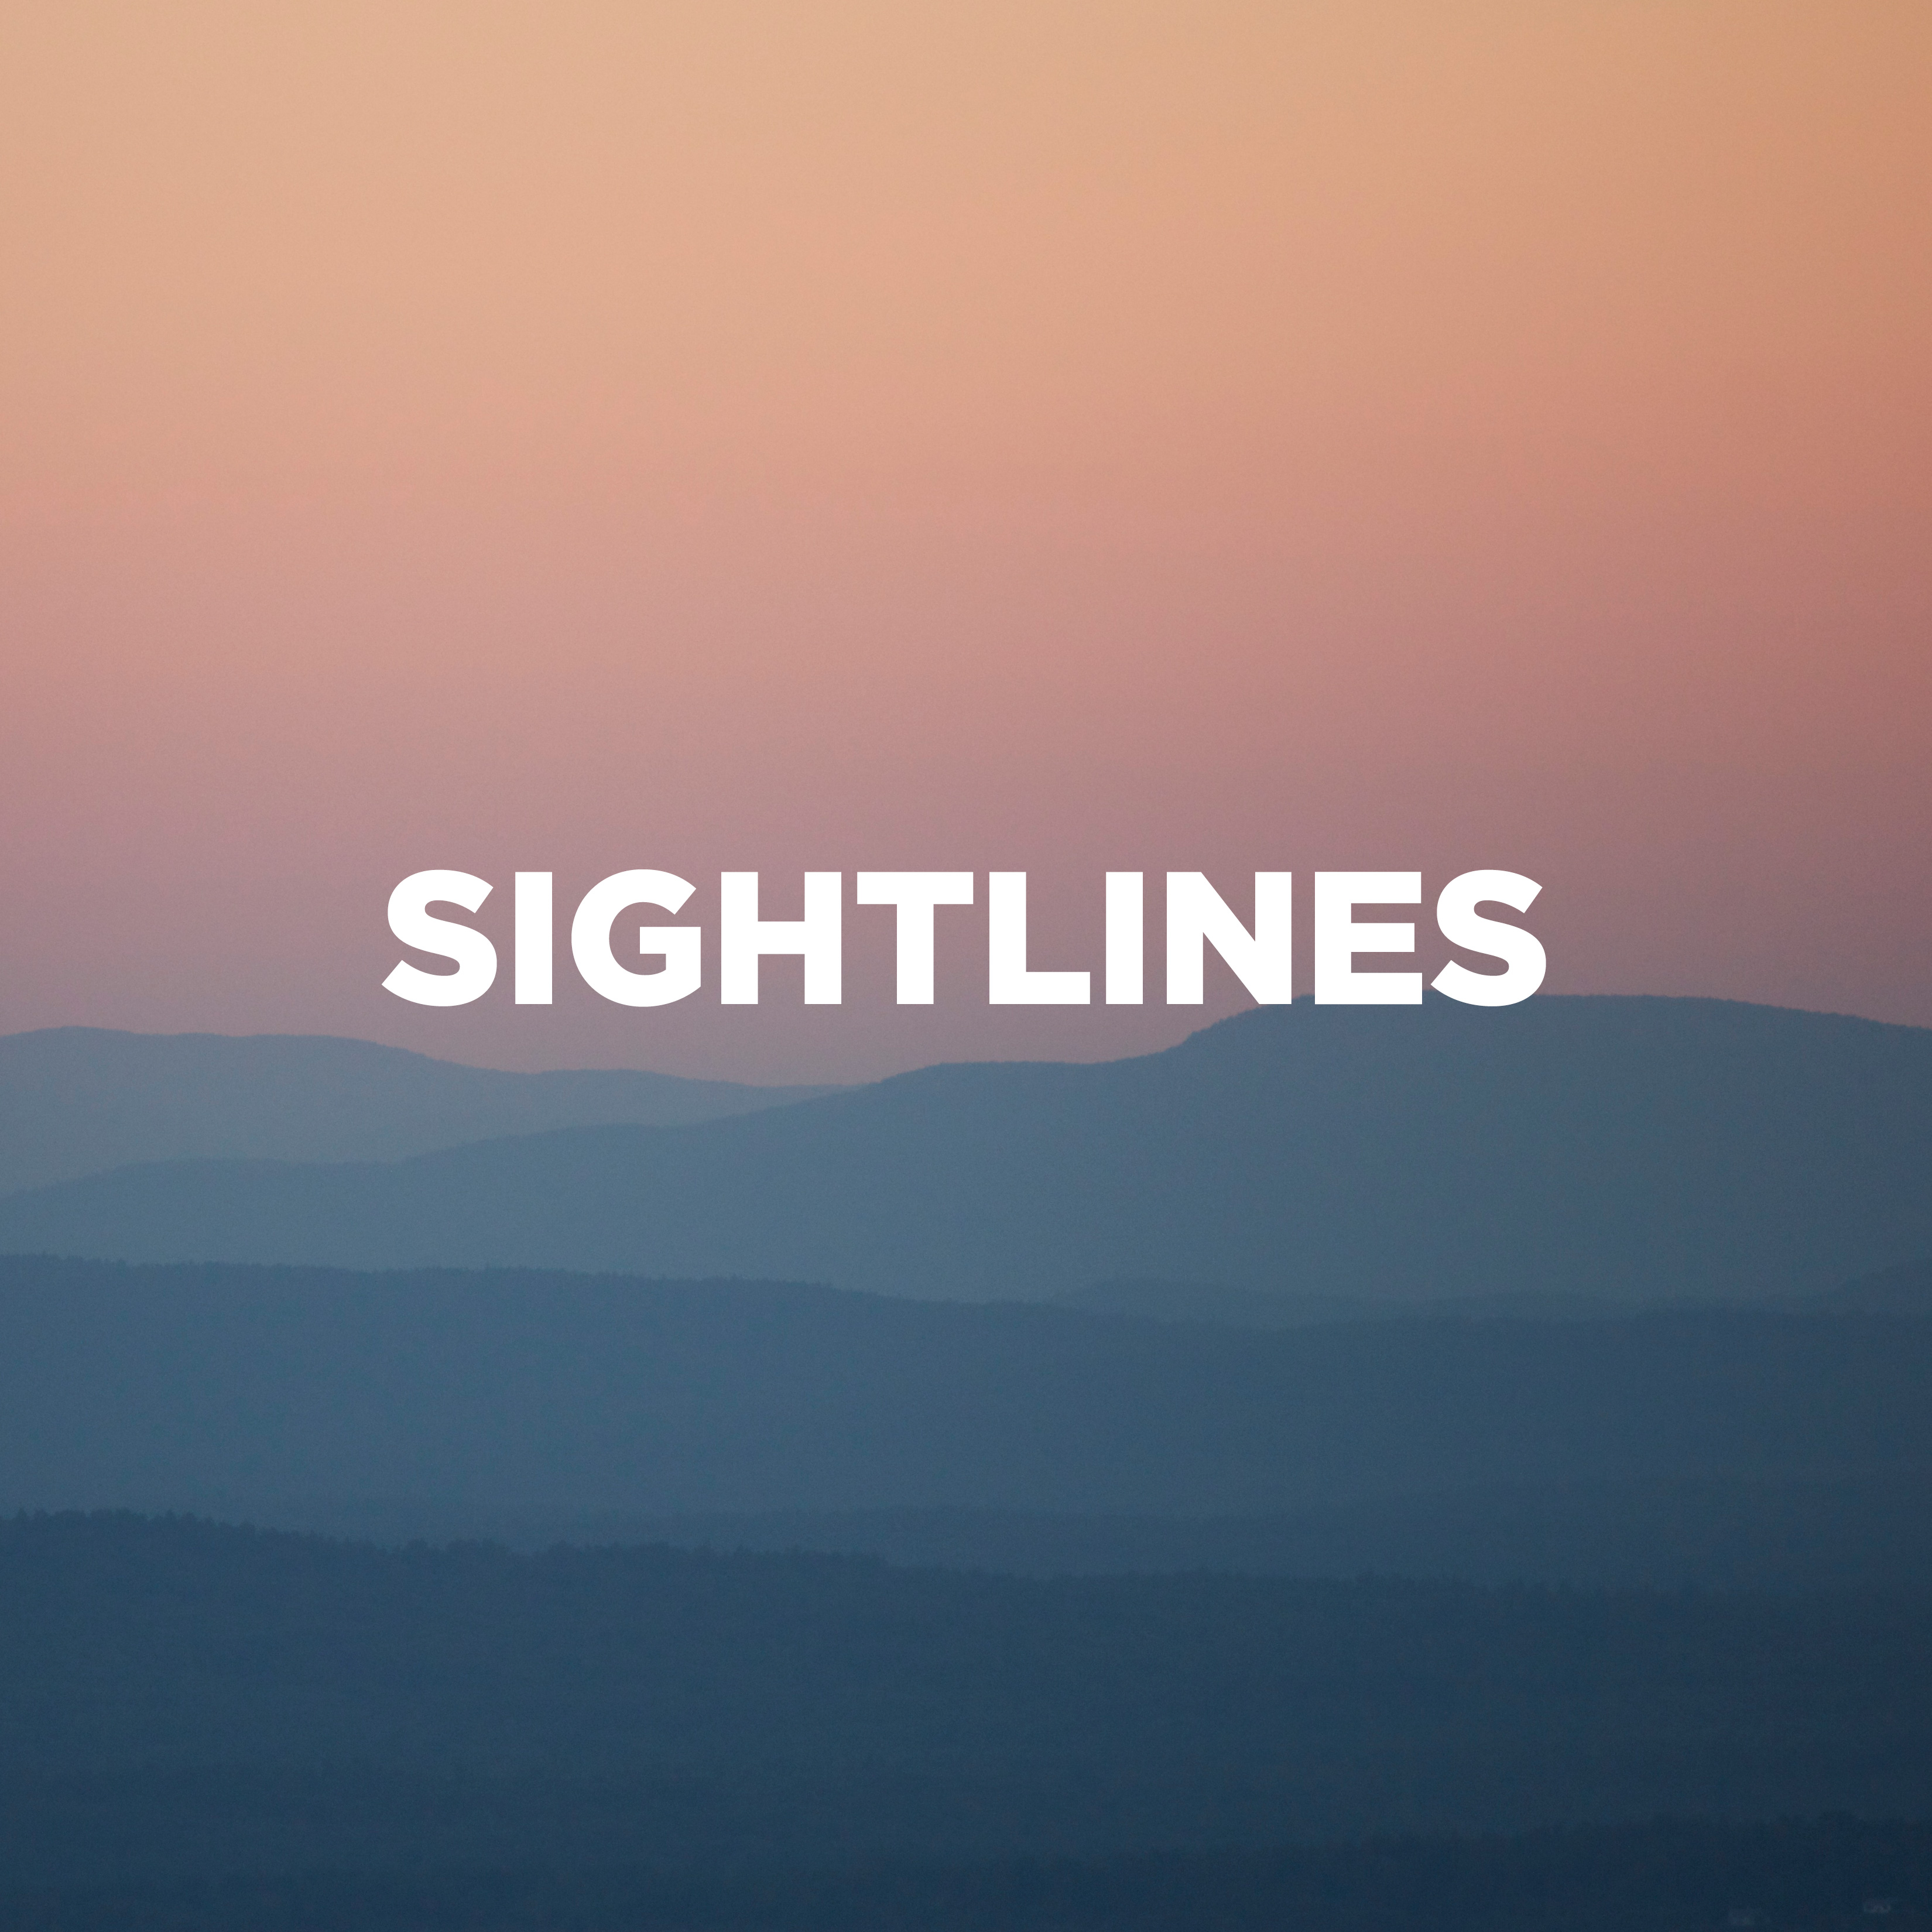 Sightlines-ep-cover